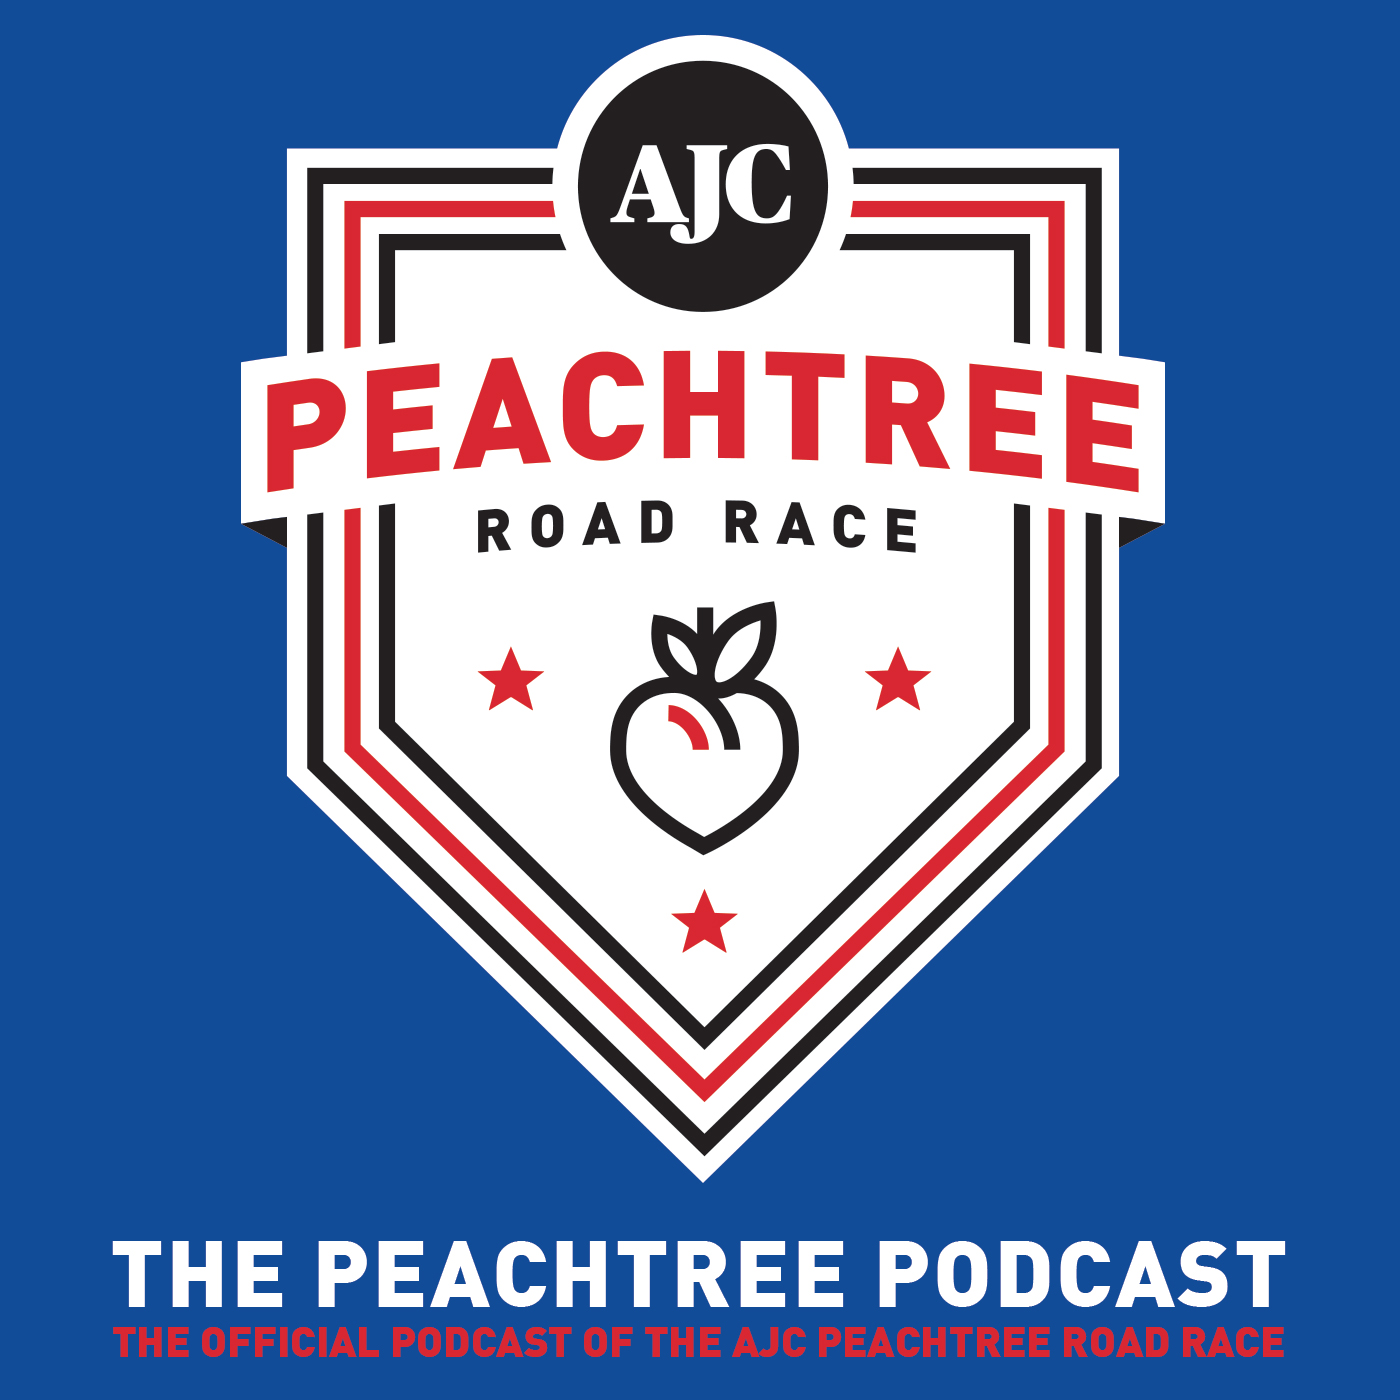 The Peachtree Podcast